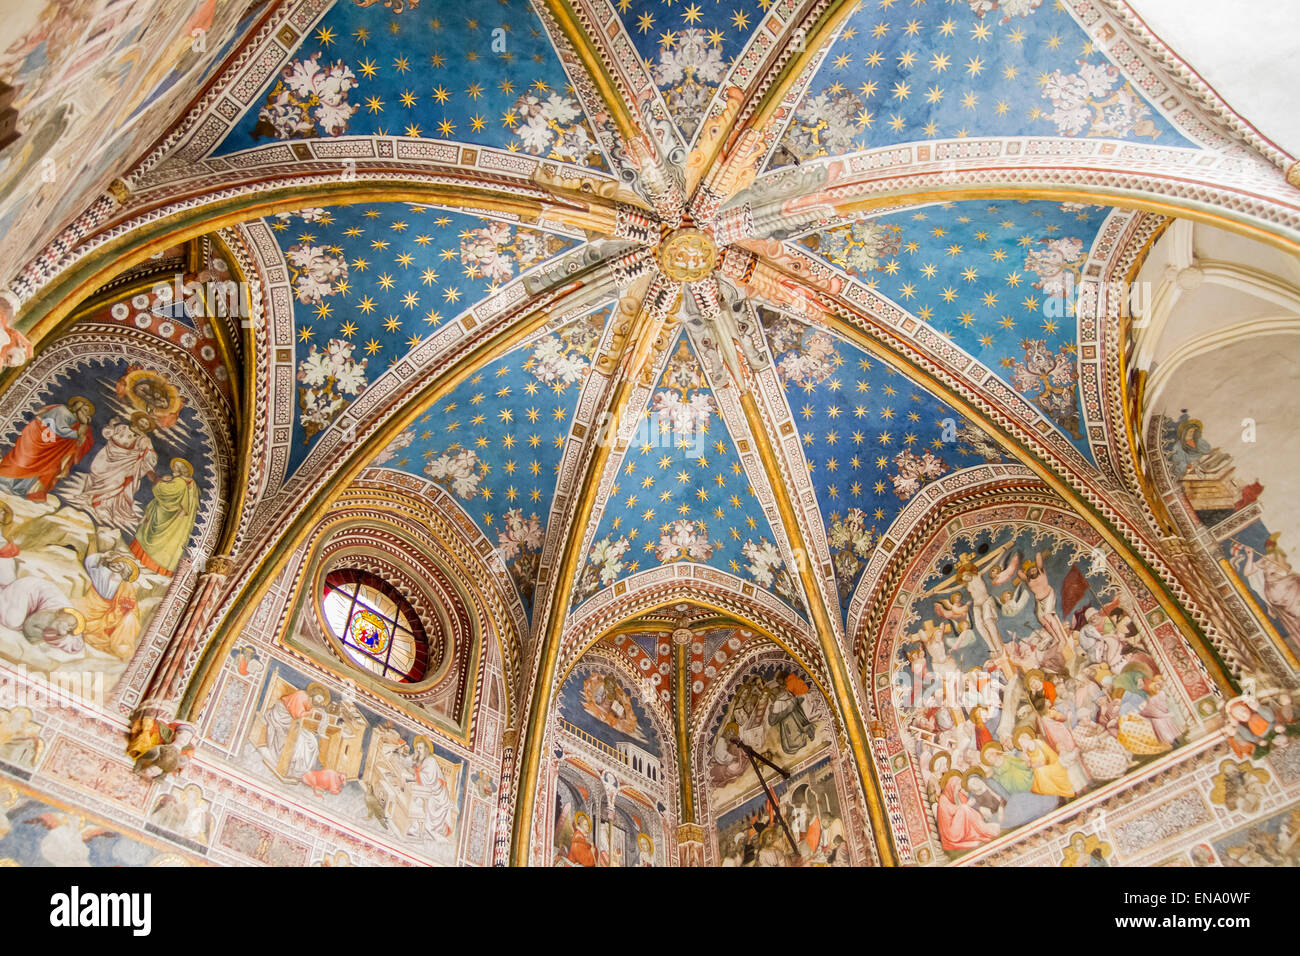 ruined chapel inside the Cathedral of Toledo, Spain - Stock Image